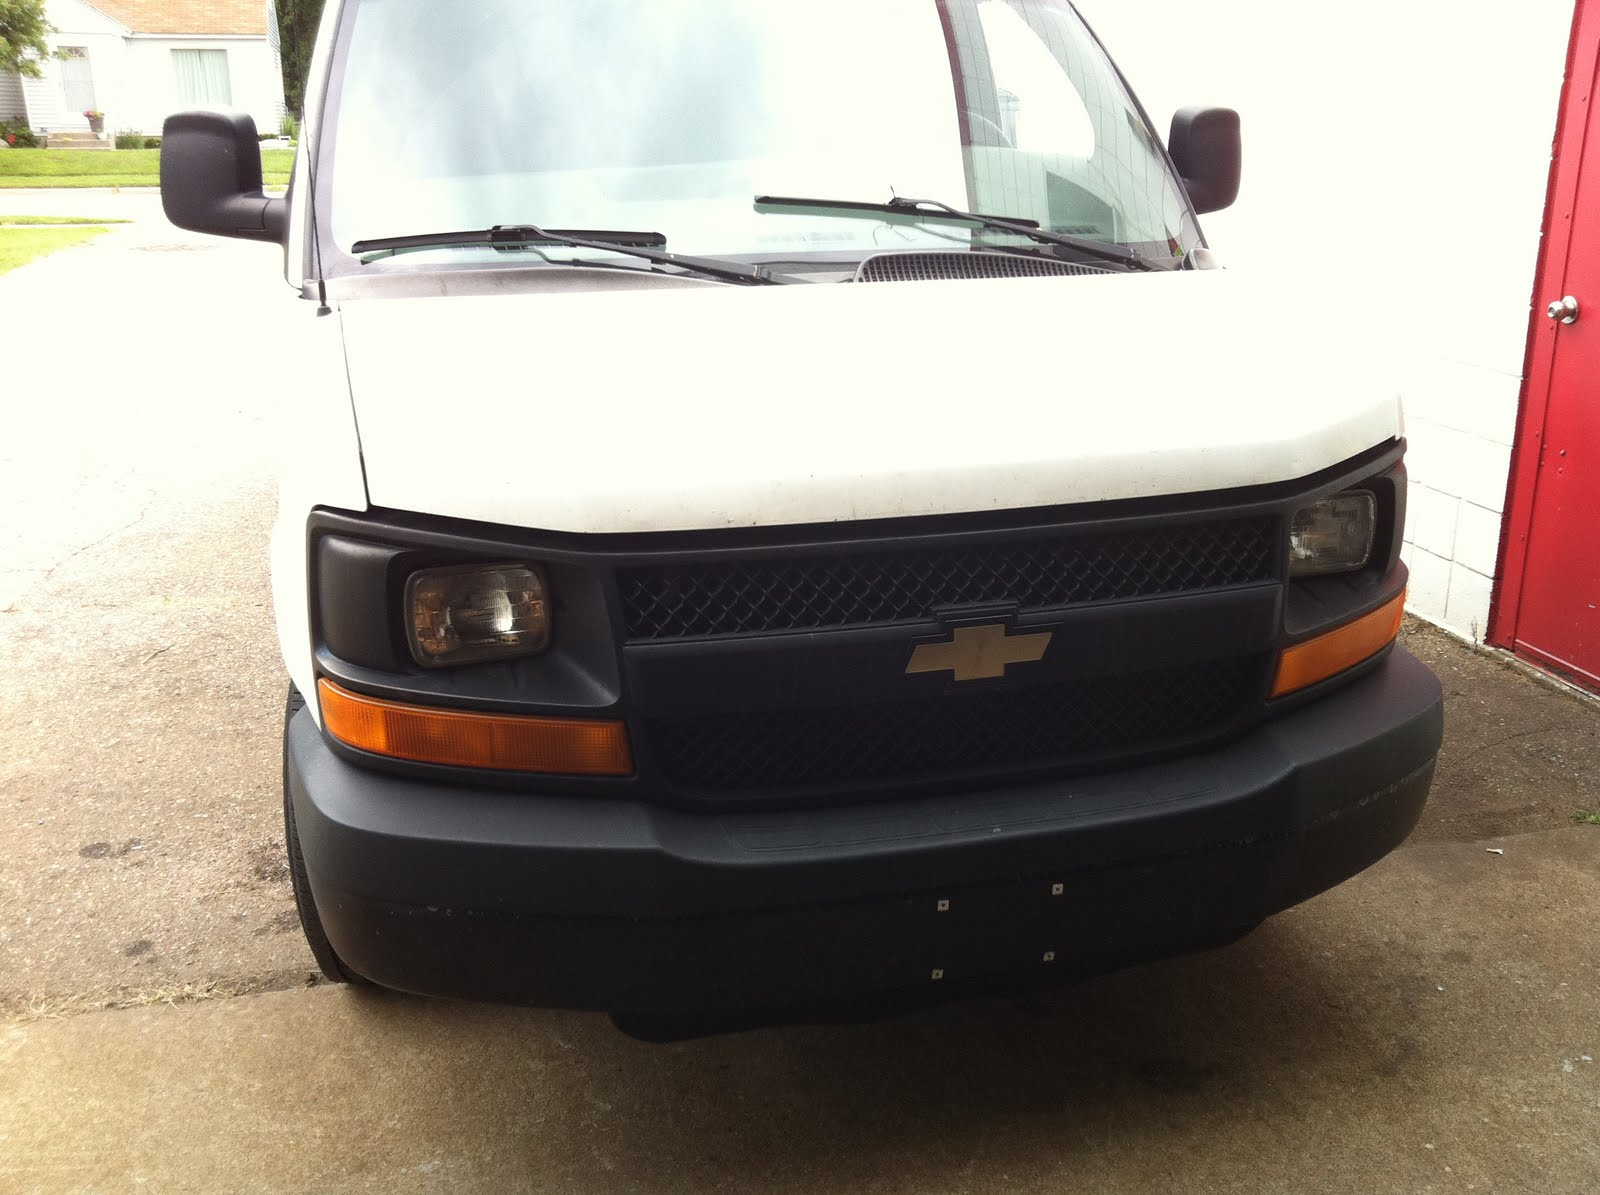 hight resolution of steps must be followed to correctly diagnose any issue with your vehicle today we will look at a 2003 chevrolet express van the air conditioner doesn t